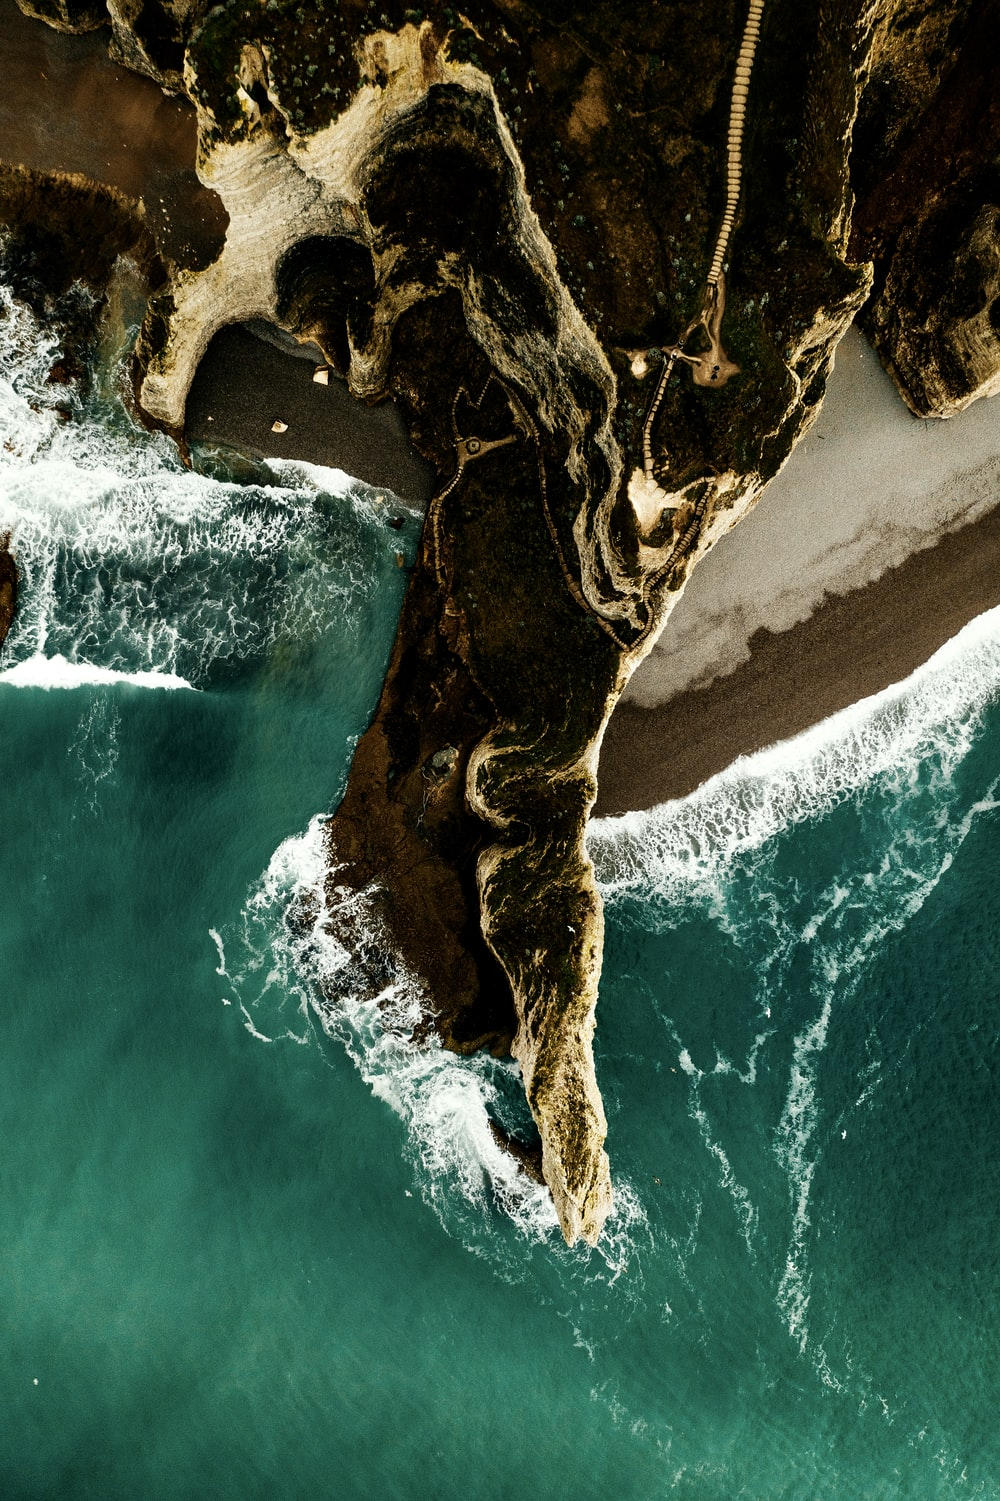 aerial photography of cliff viewing body of water during daytime